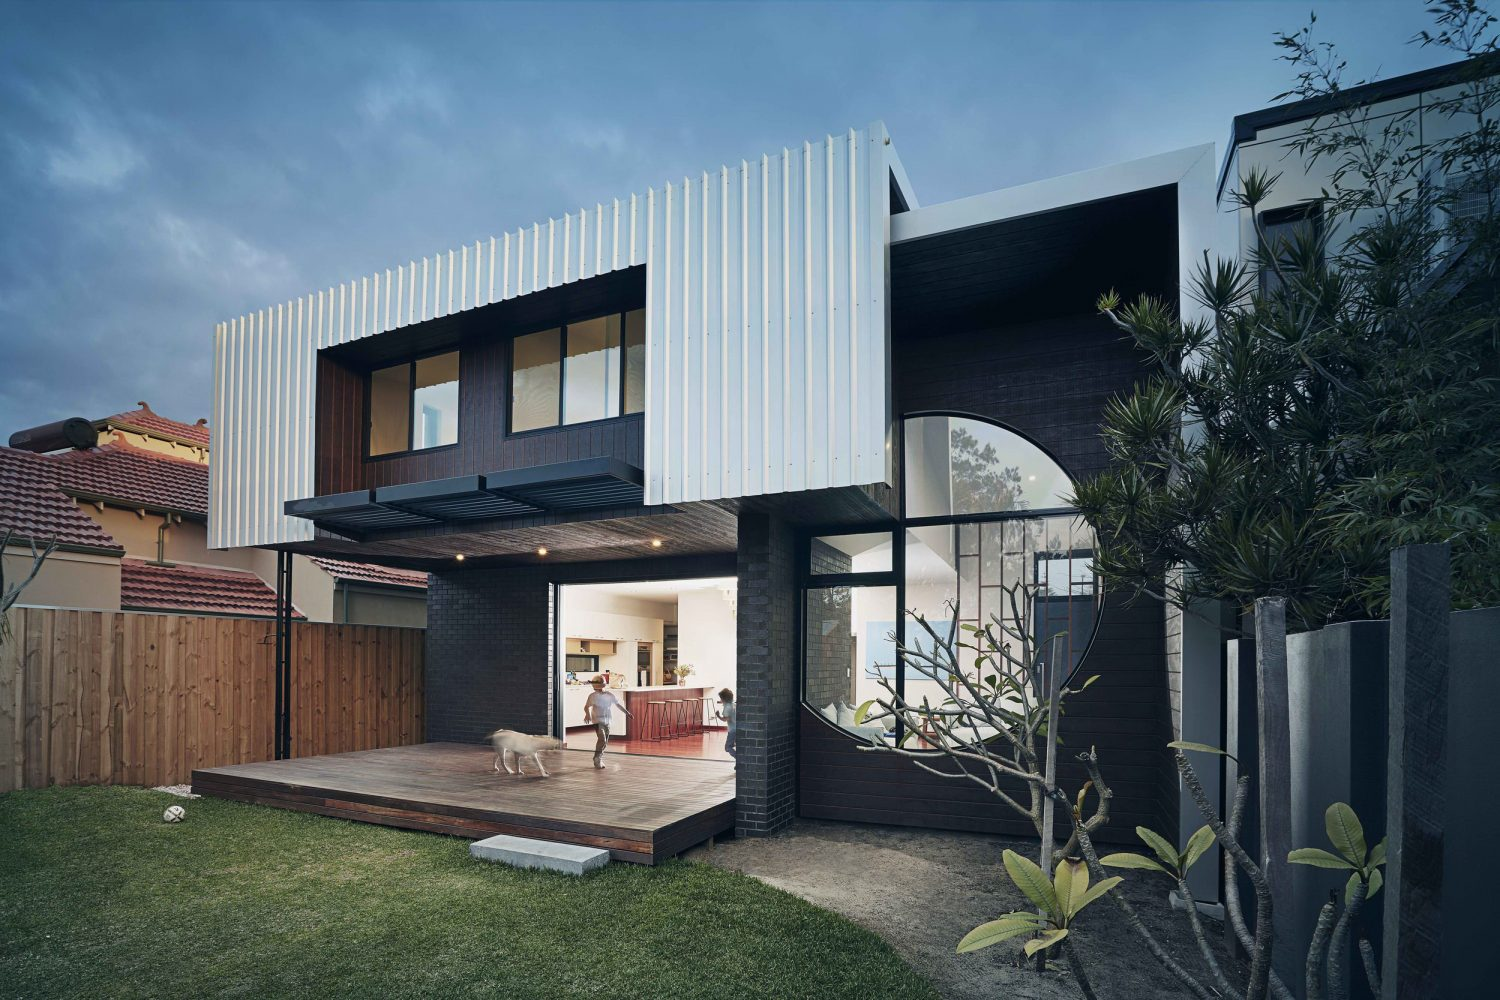 Hawkstone House by Steelehouse Architecture